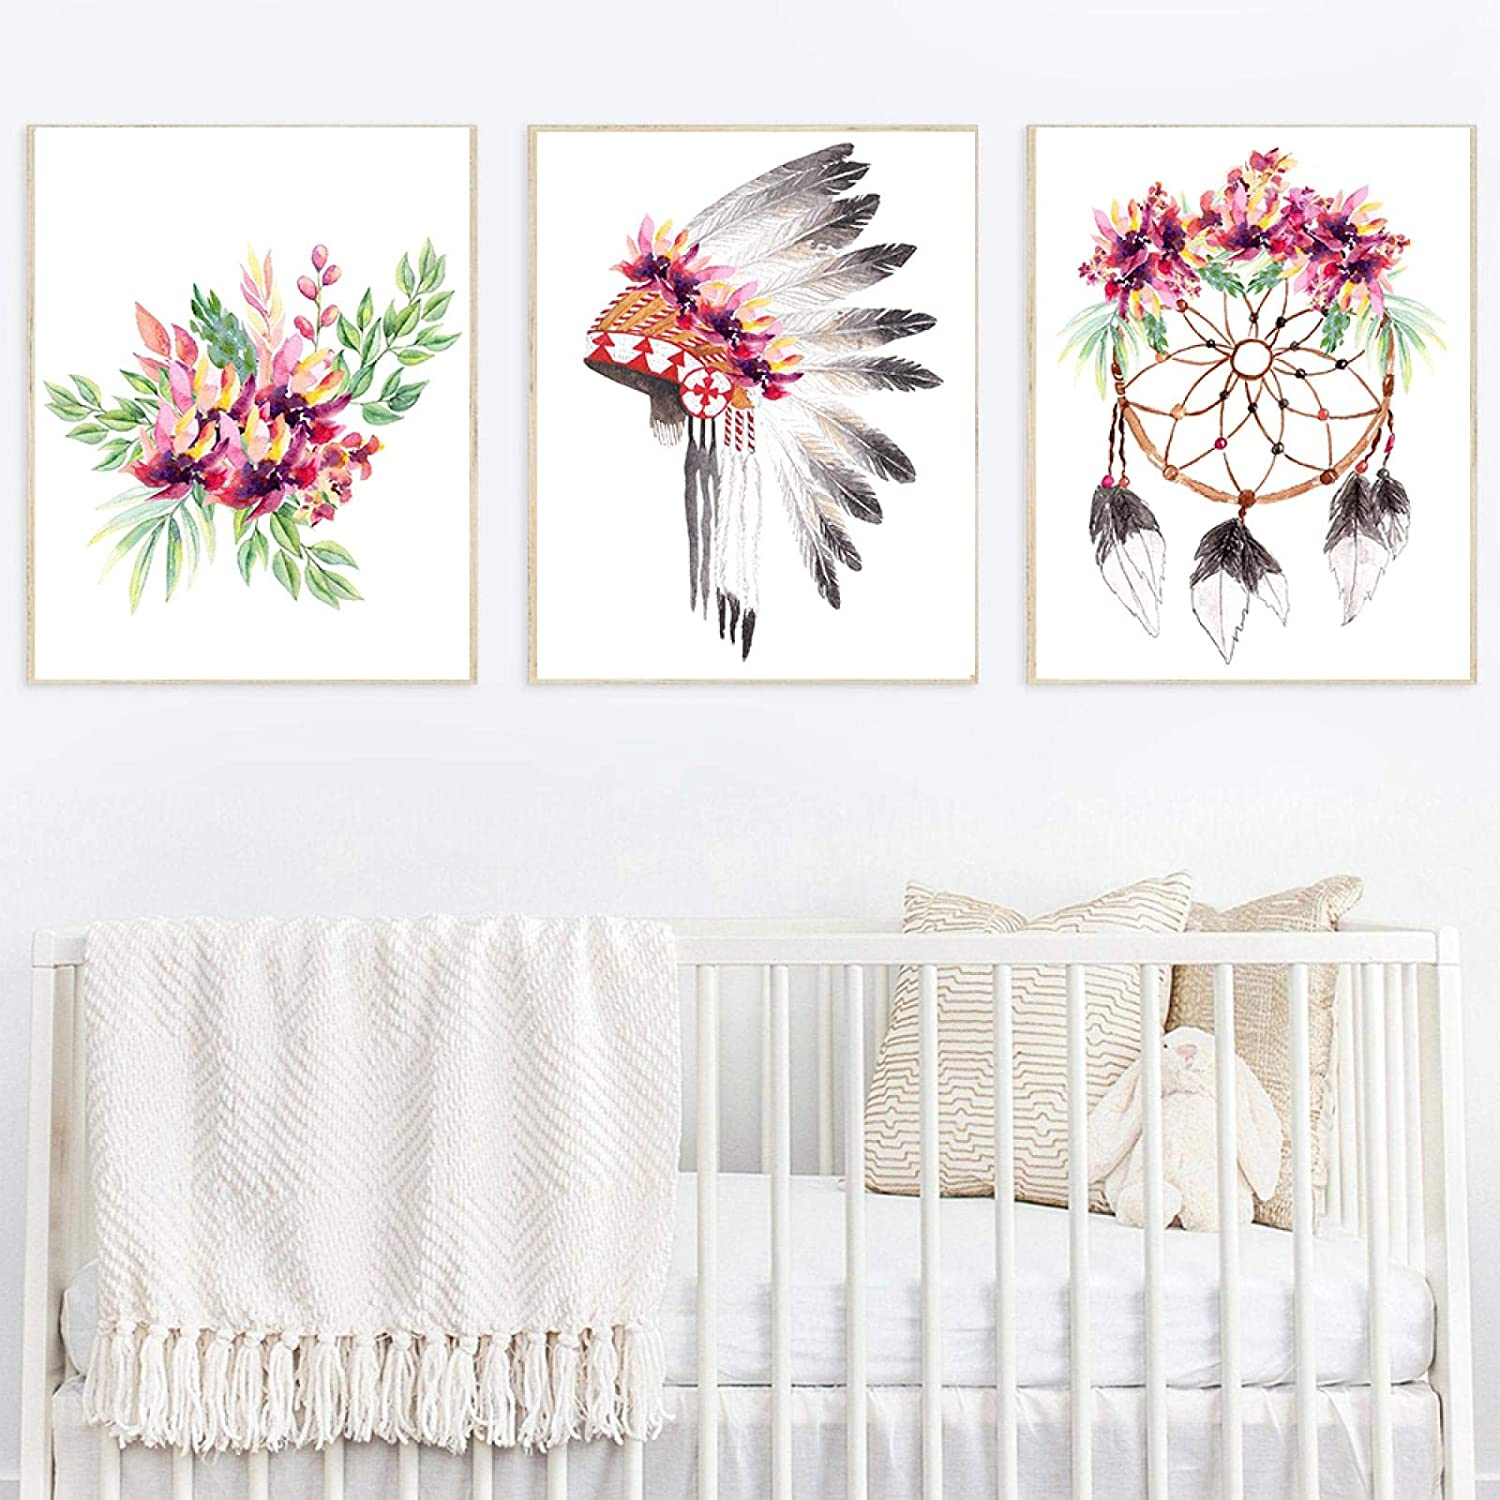 NFXOC (Wall Art) Canvas Painting Boho Nursery Pink Woodland Fairy Sweet Dreams Quotes Posters and Prints Pictures for Home Decor (30x50cm) 3pcs Frameless